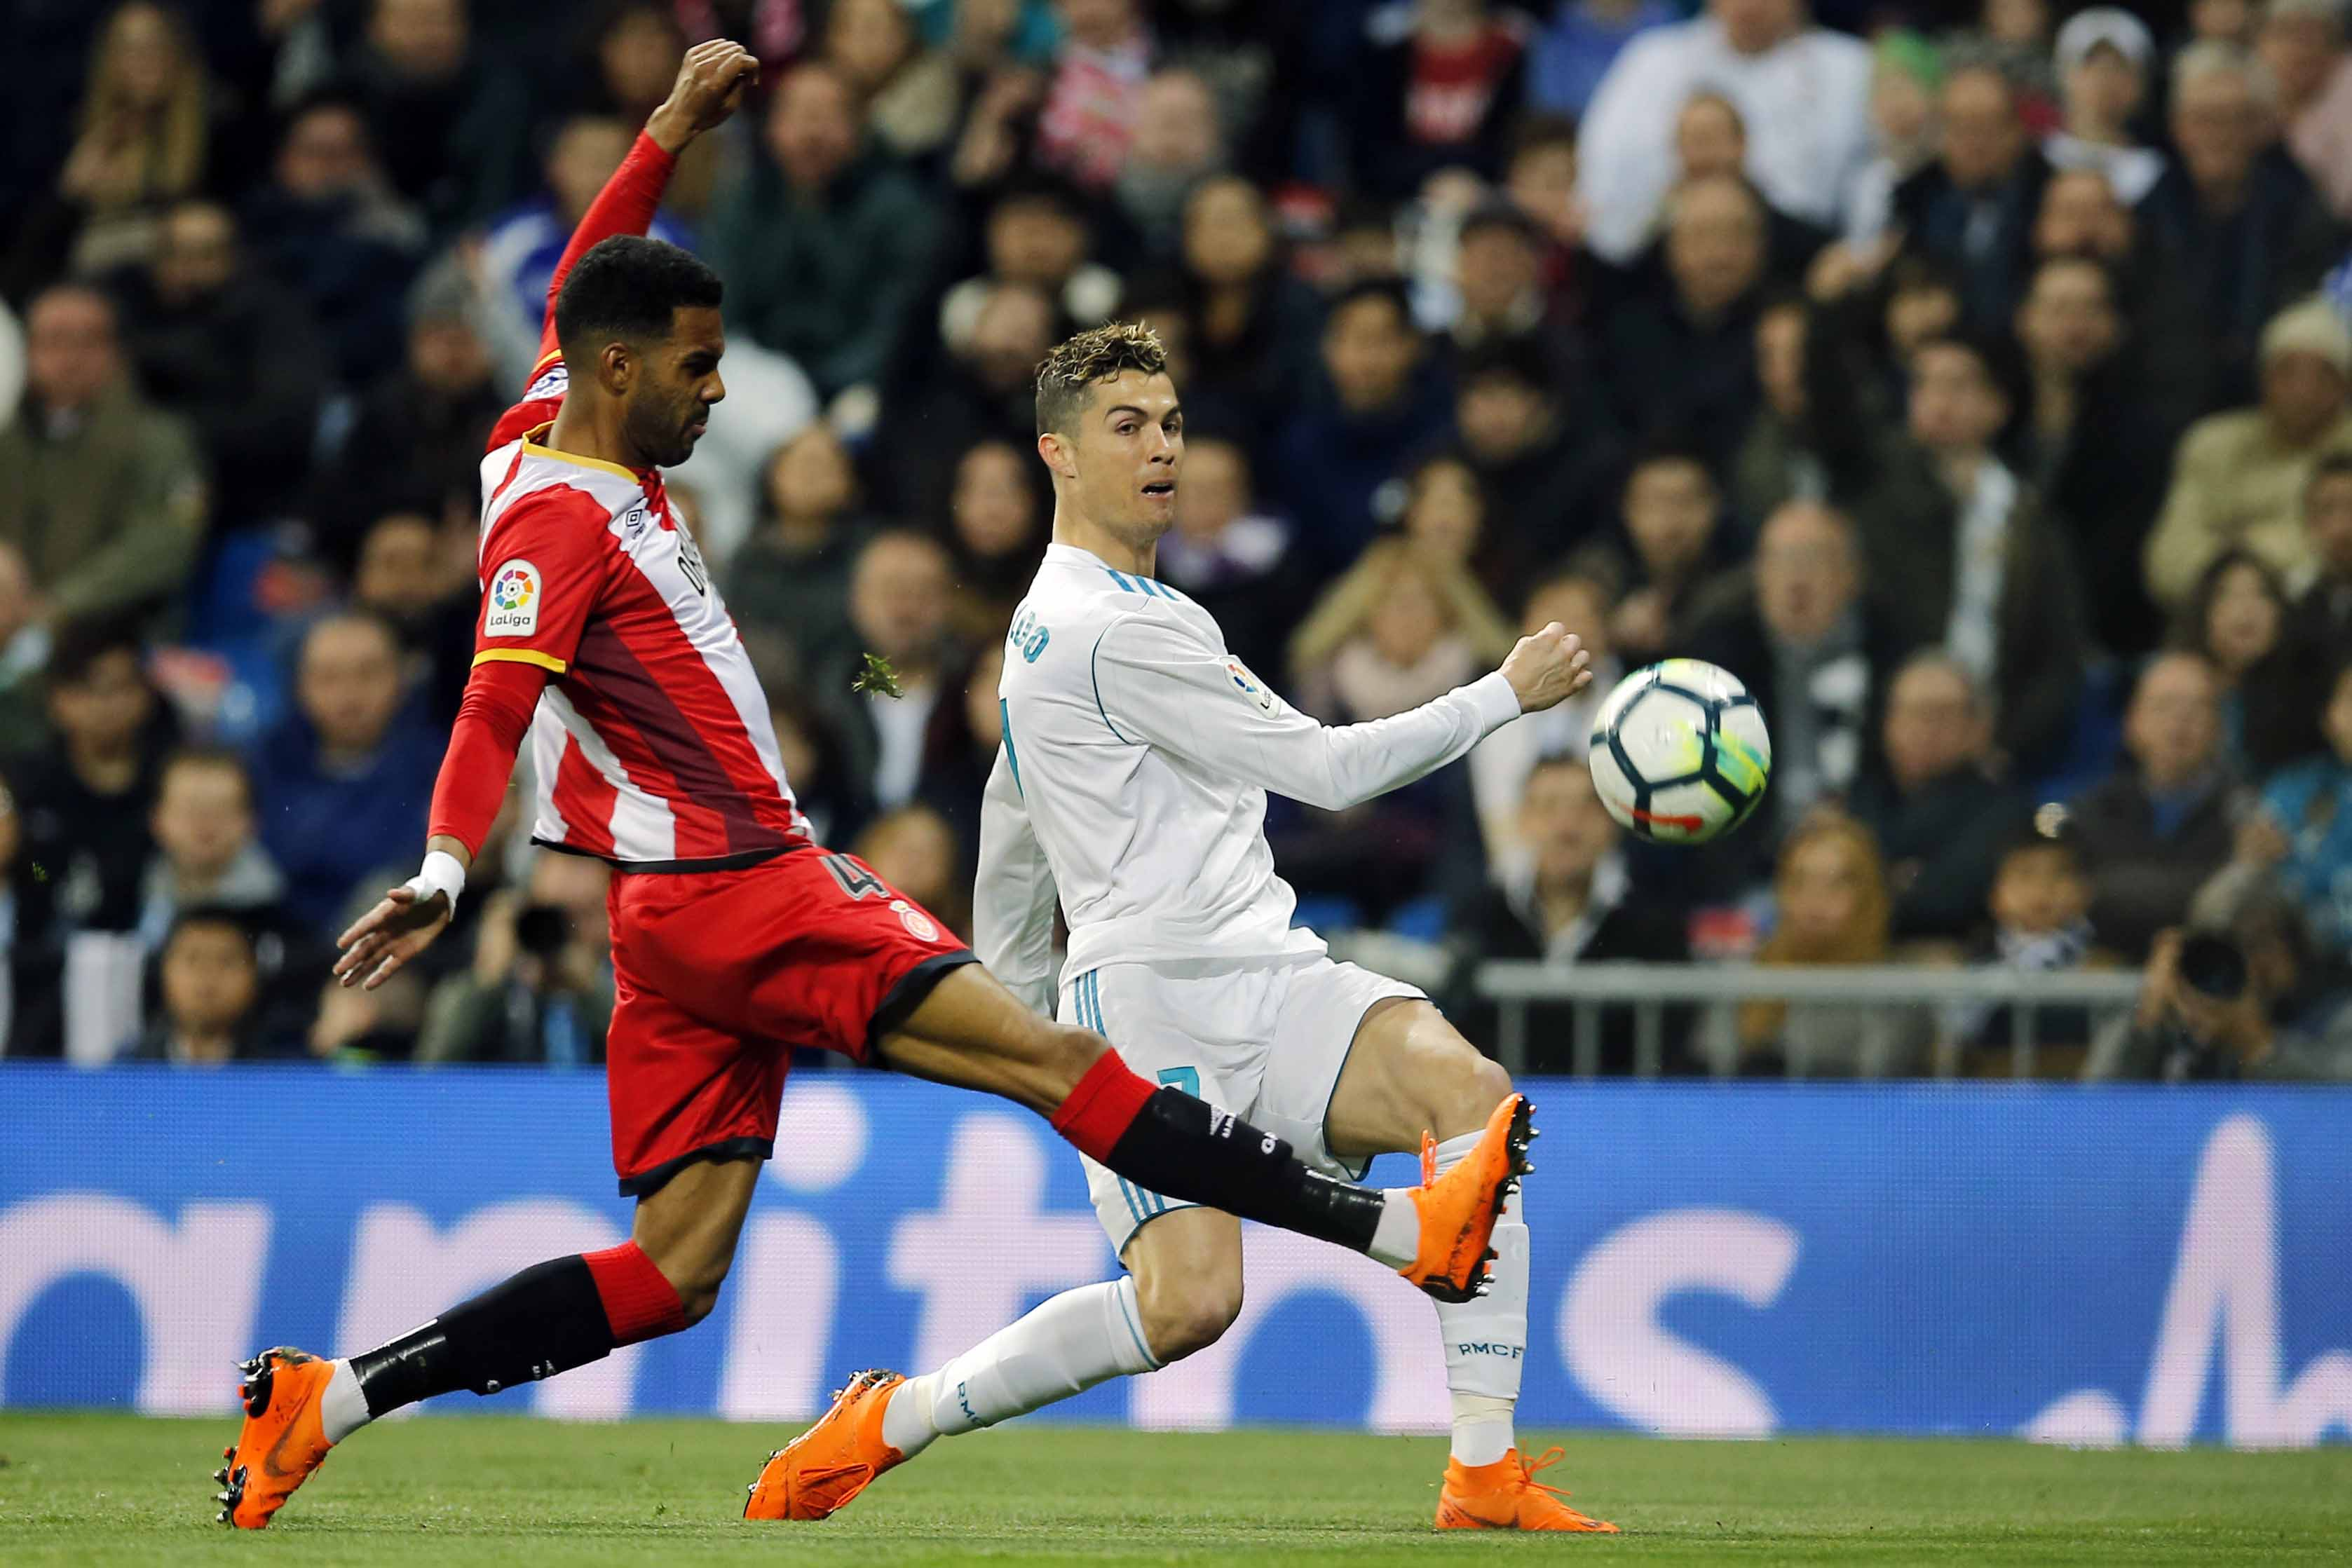 Ronaldo scores 4 goals as Madrid beat Girona 6-3